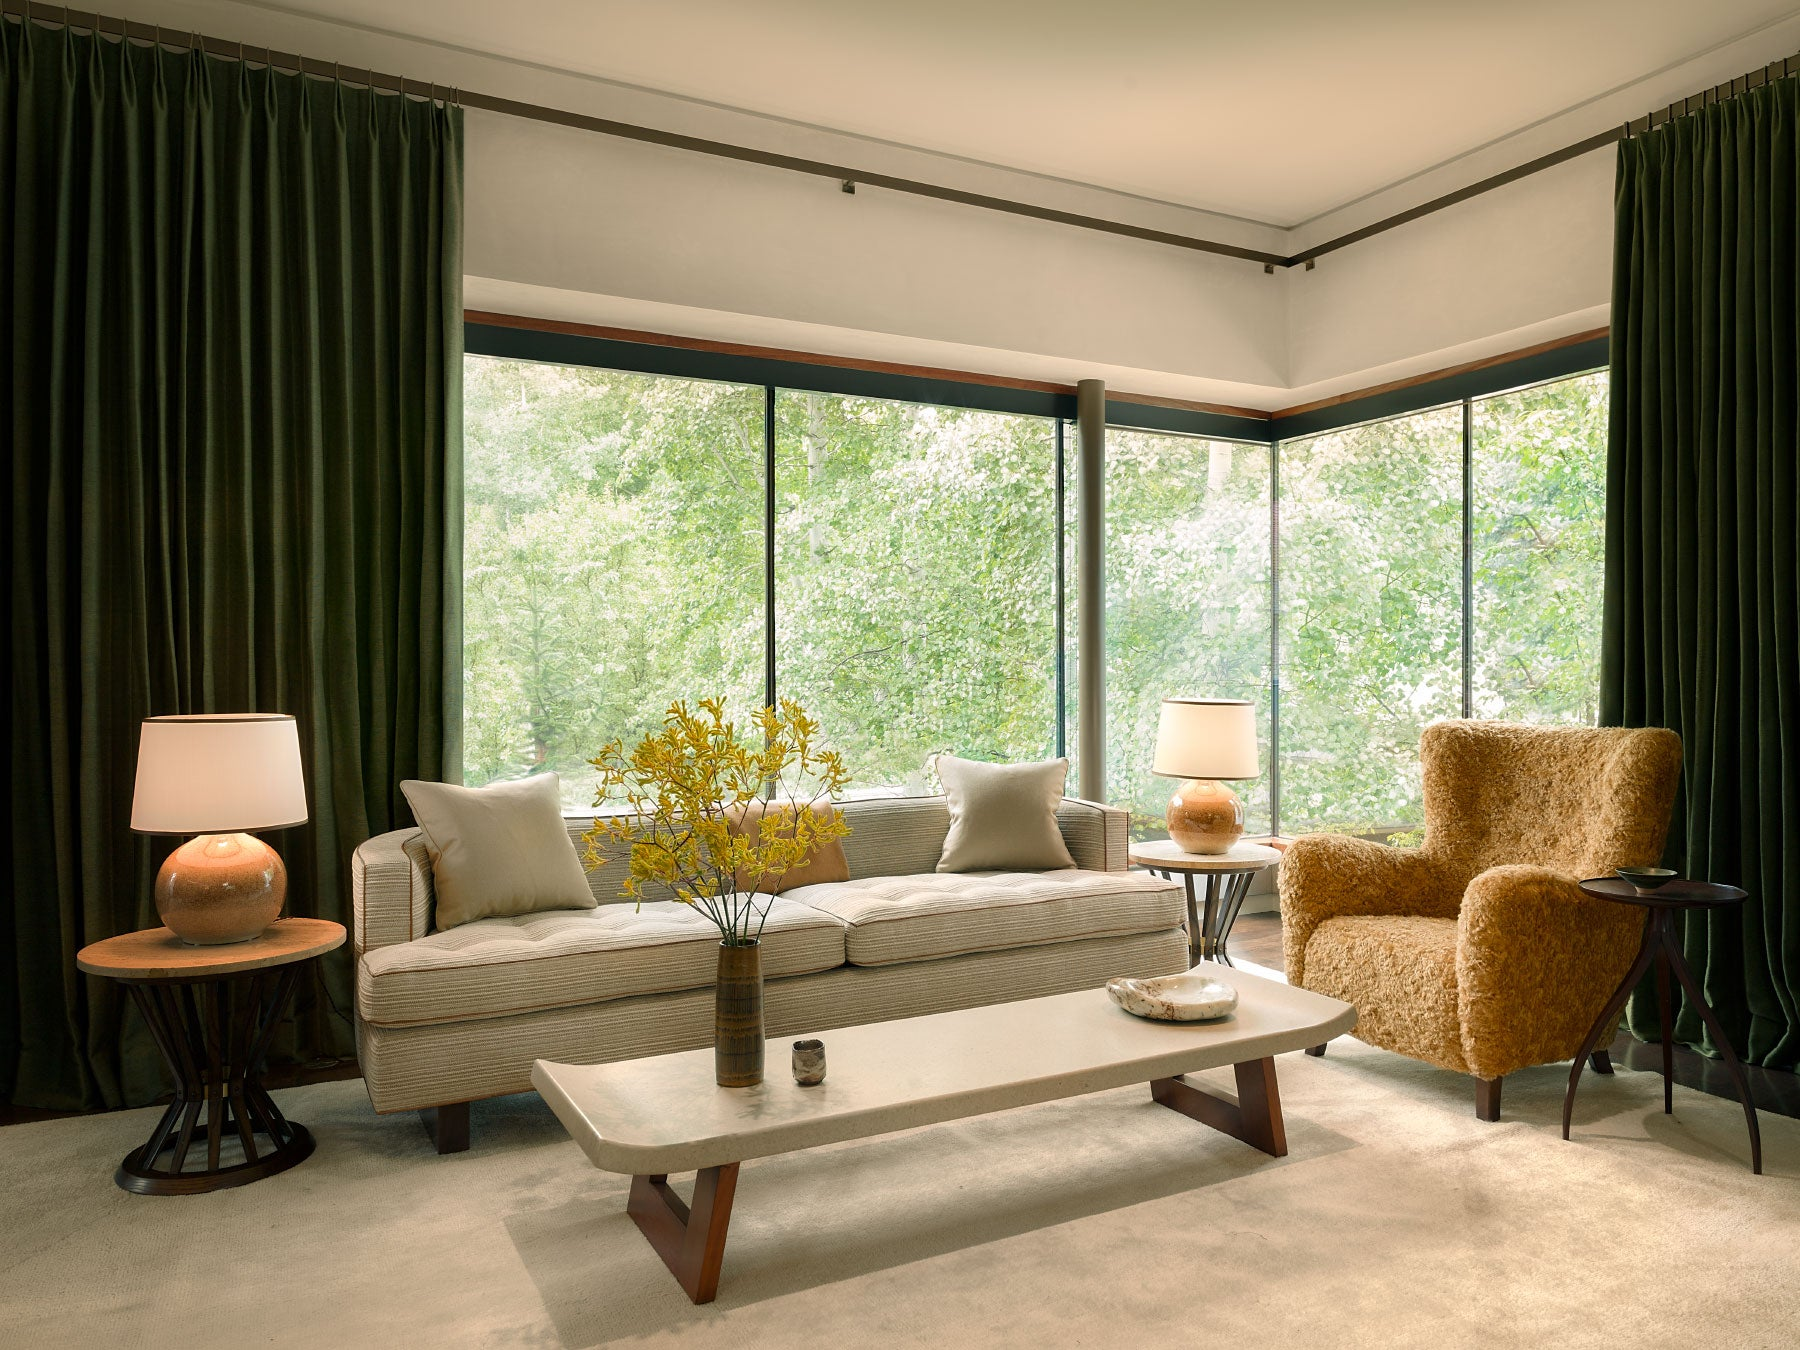 Aspen living room by Clive Lonstein